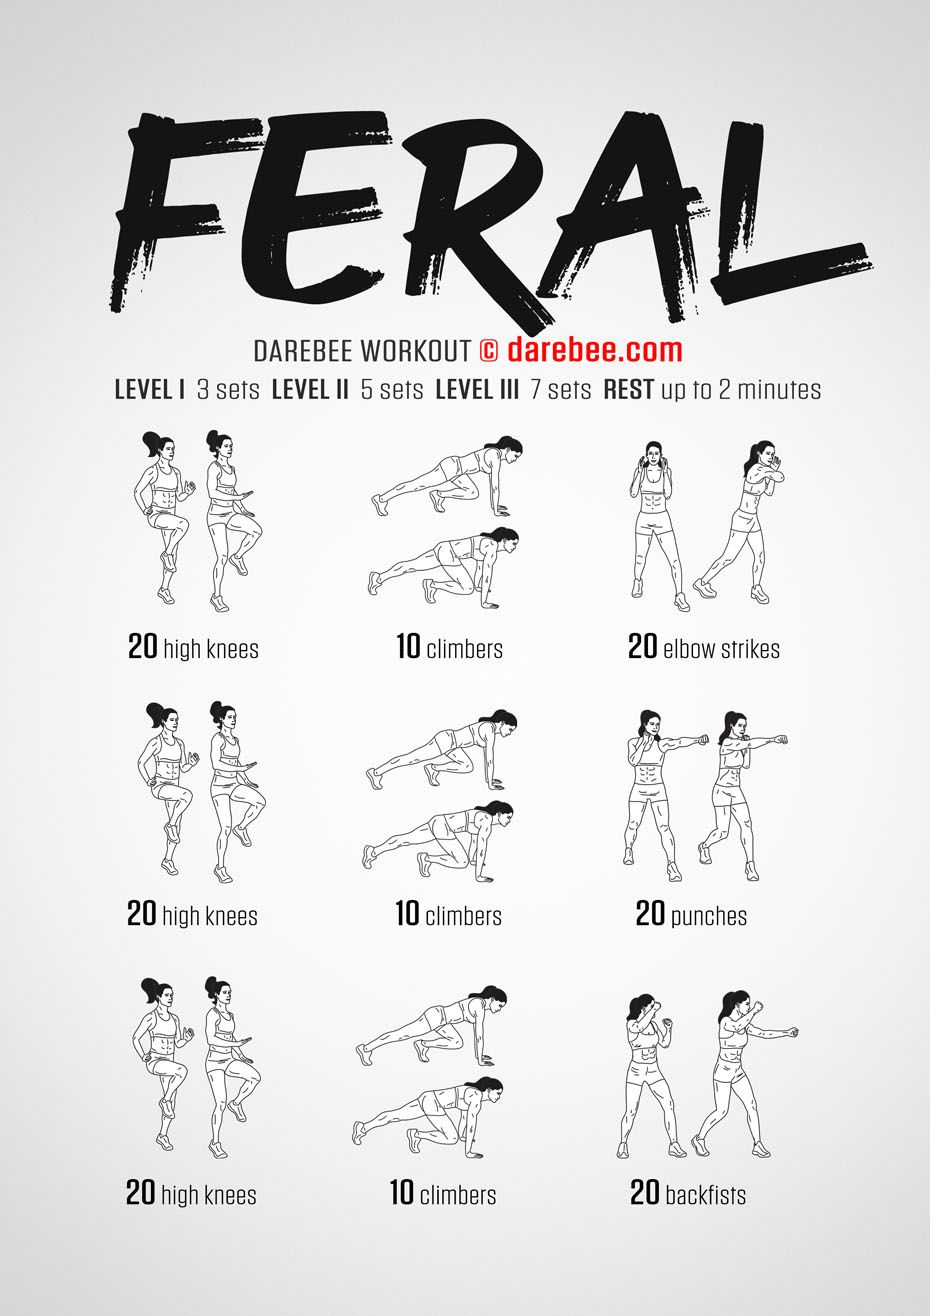 Feral Workout Darebee, Gym for beginners, Home boxing